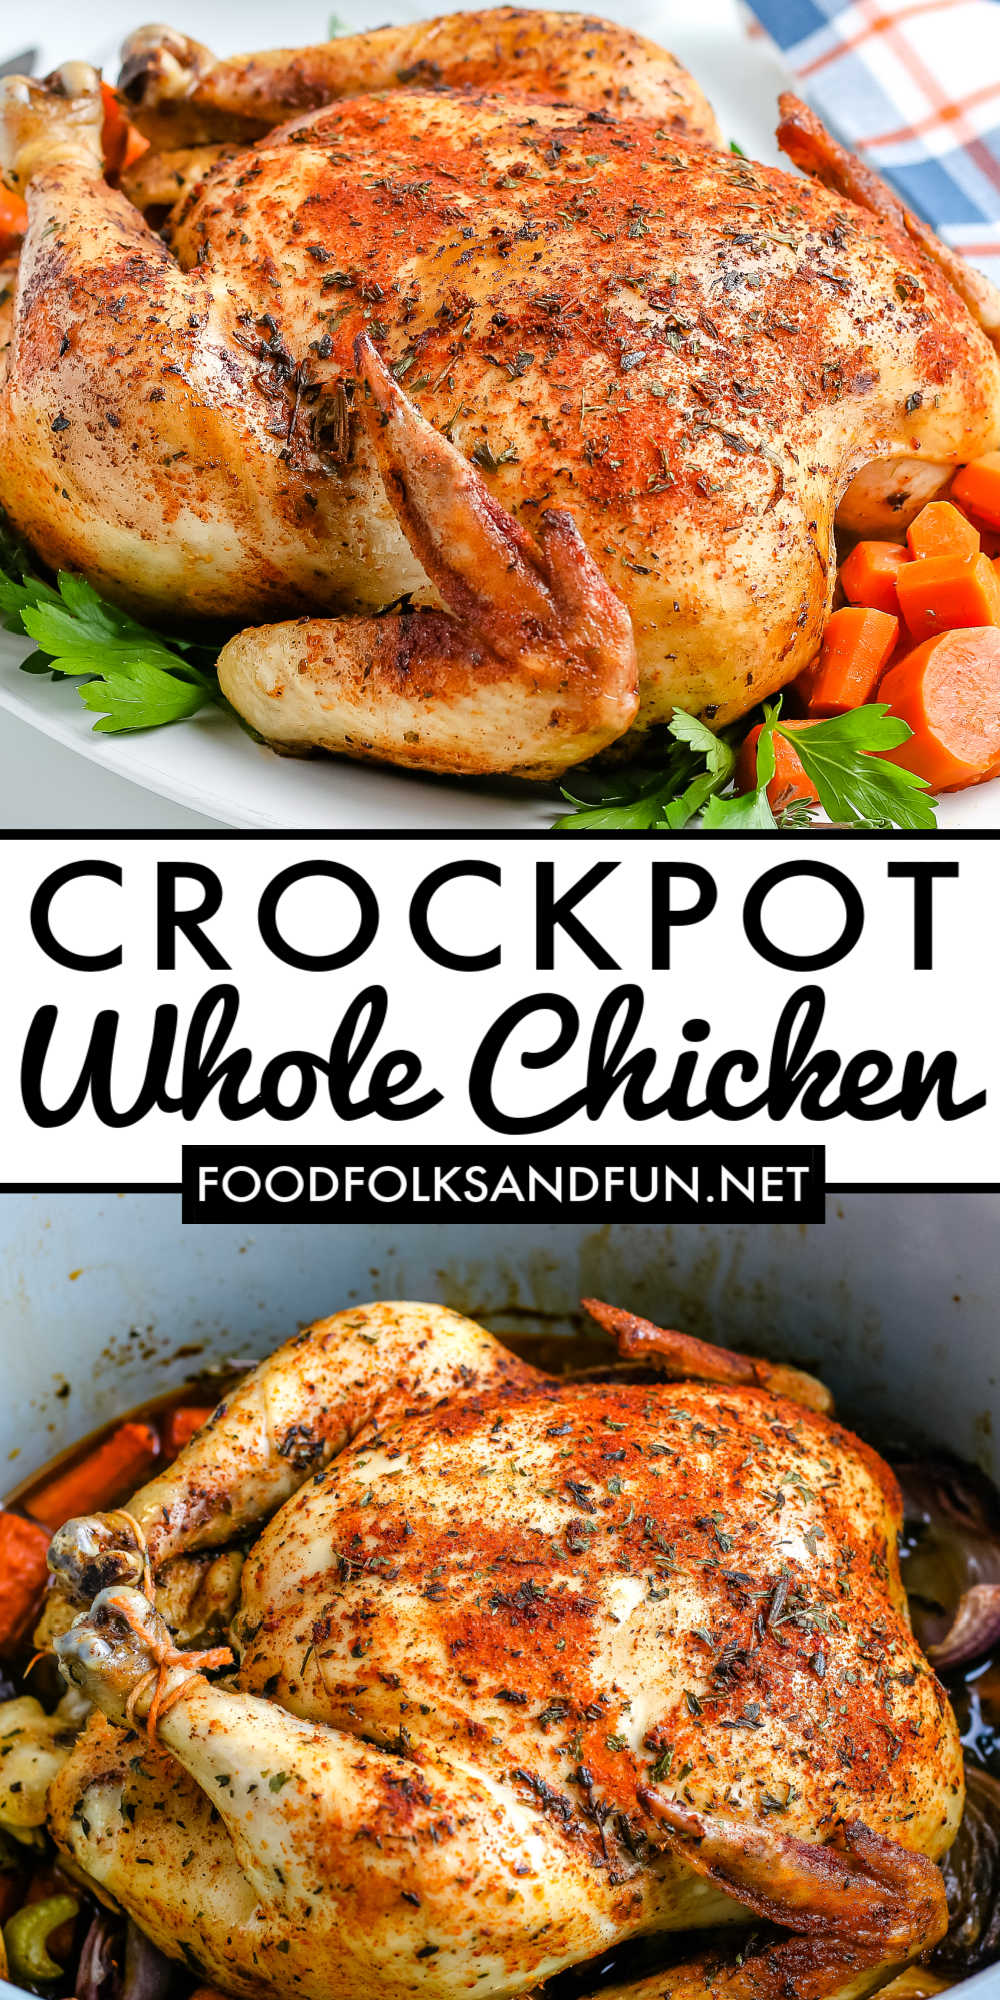 This Crockpot Whole Chicken recipe makes a succulent roast chicken with minimal effort. It's suitable for weeknights, Sunday dinners, and even holidays!  via @foodfolksandfun